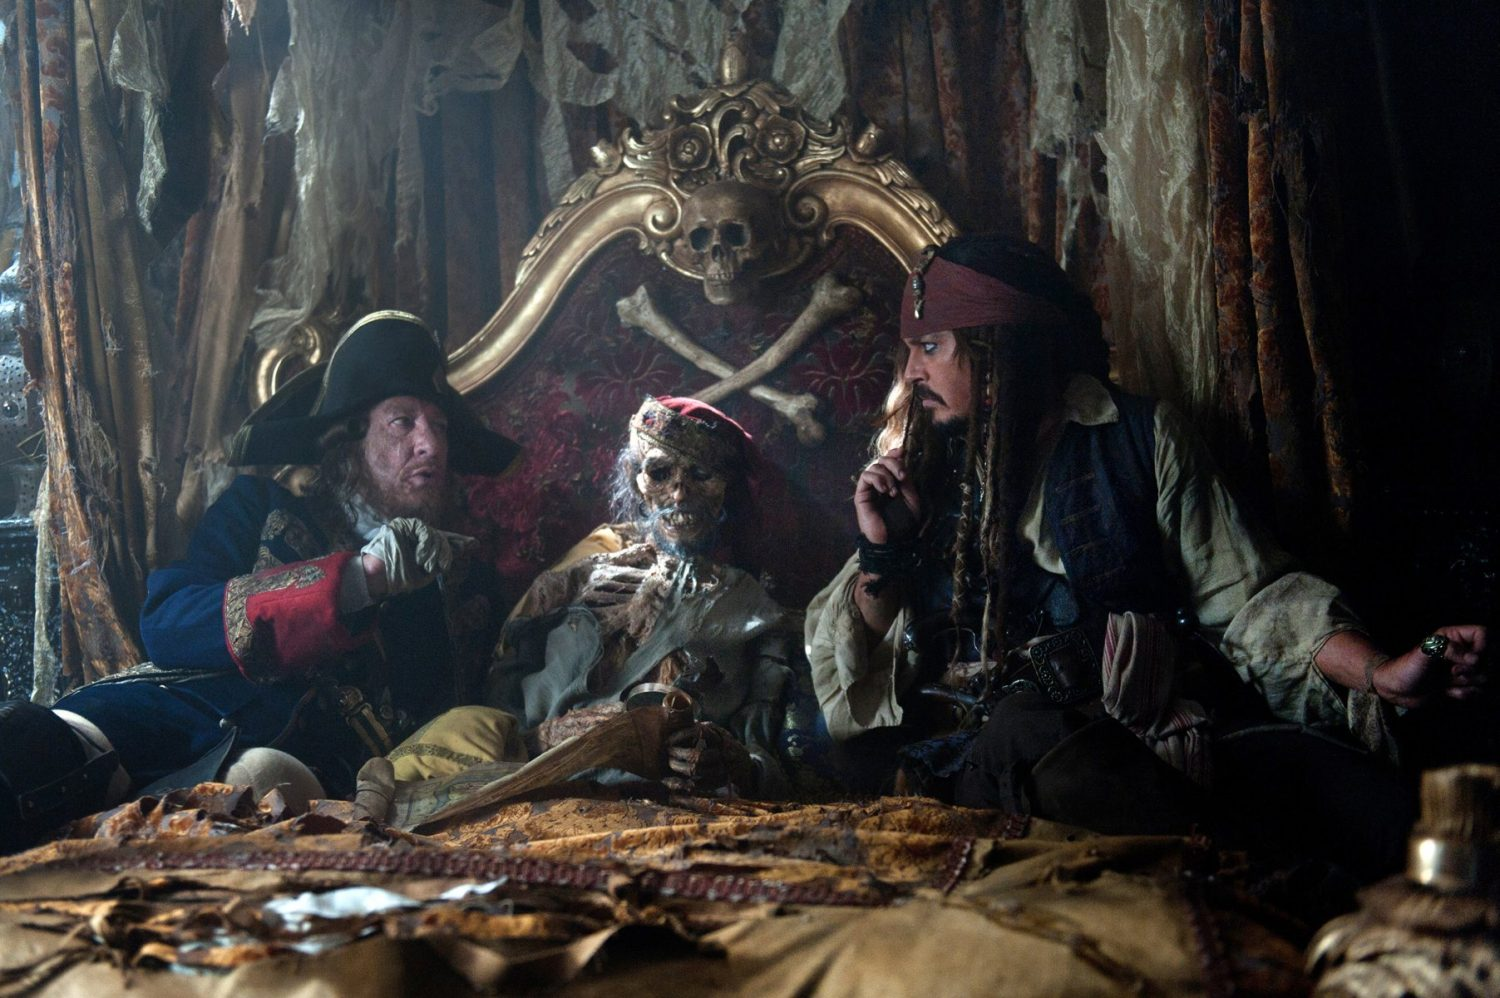 Crítica: Piratas do Caribe – A Vingança de Salazar (Pirates of the Caribbean: Dead Men Tell No Tales, EUA, 2017)